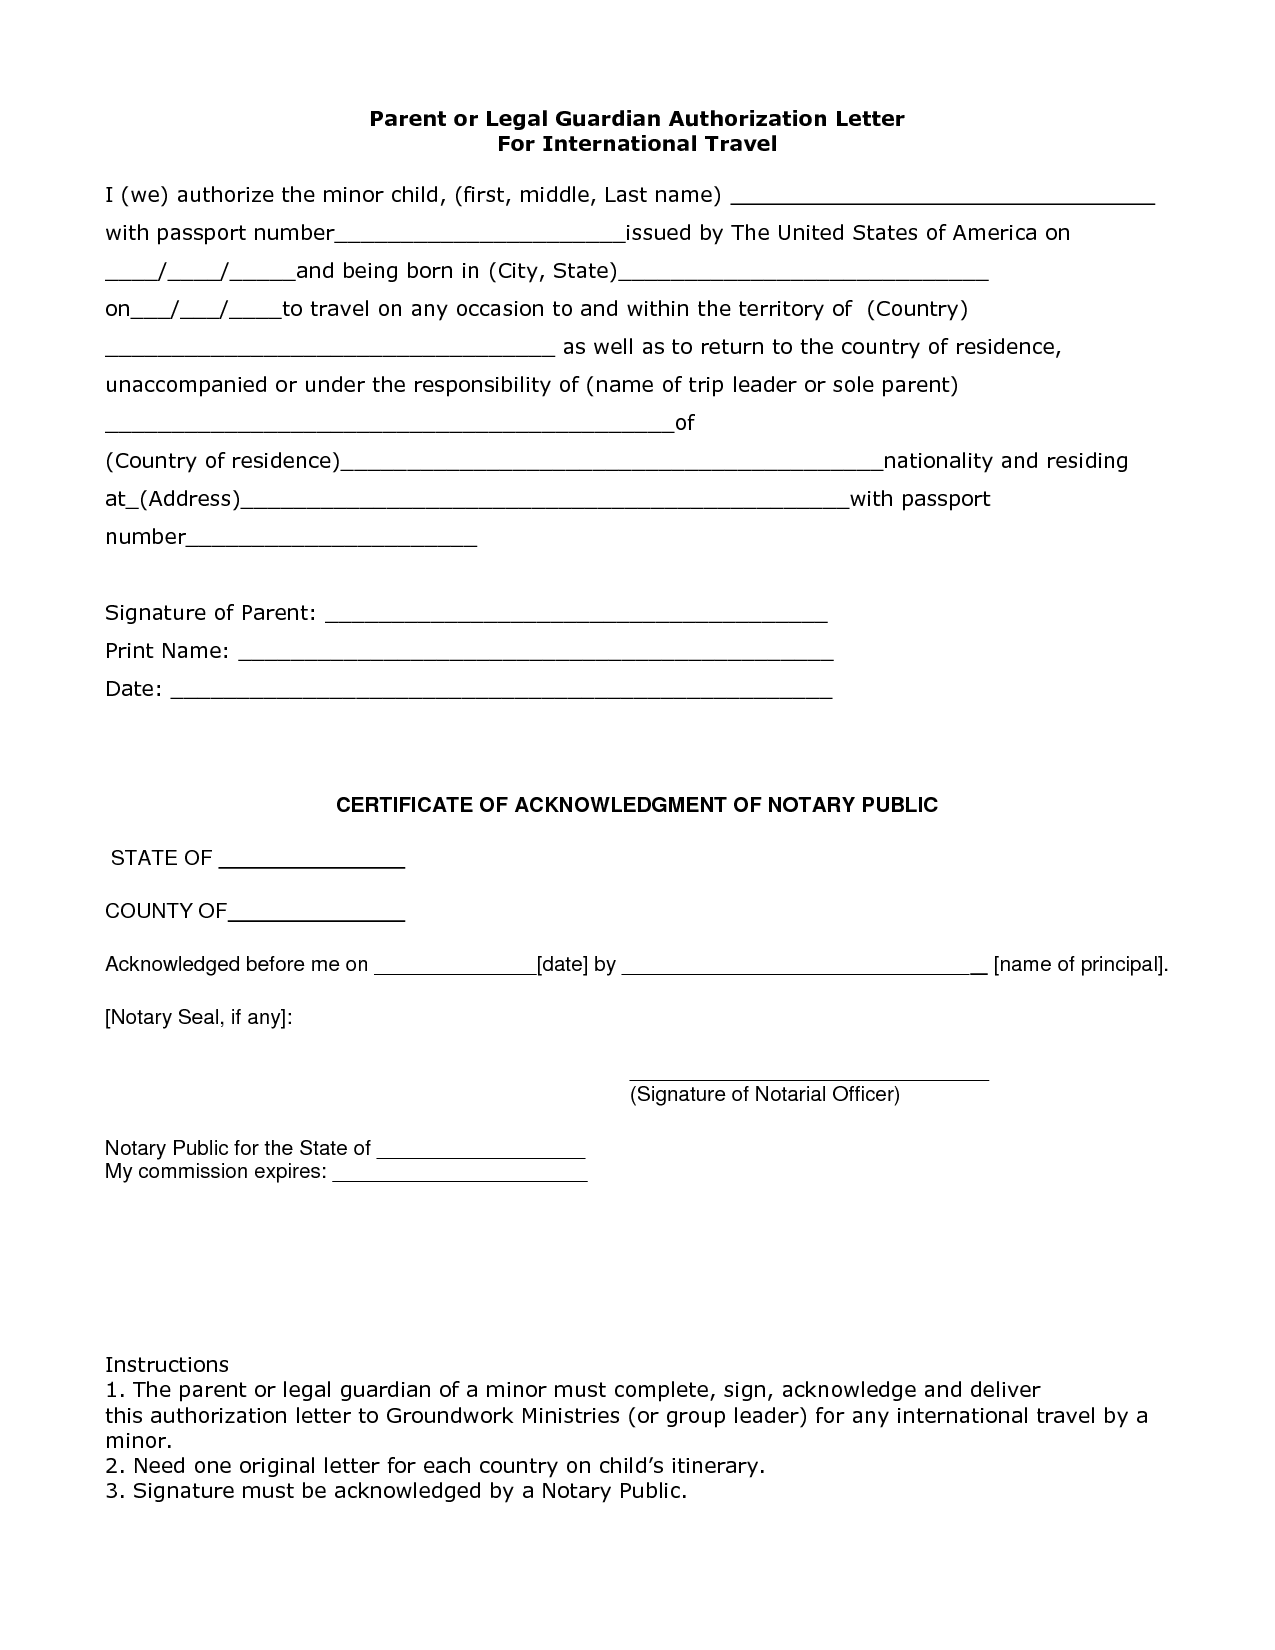 Affidavit Of Facts Template Brilliant Letter Example Legal Guardianship Sample And Forms  Personal .